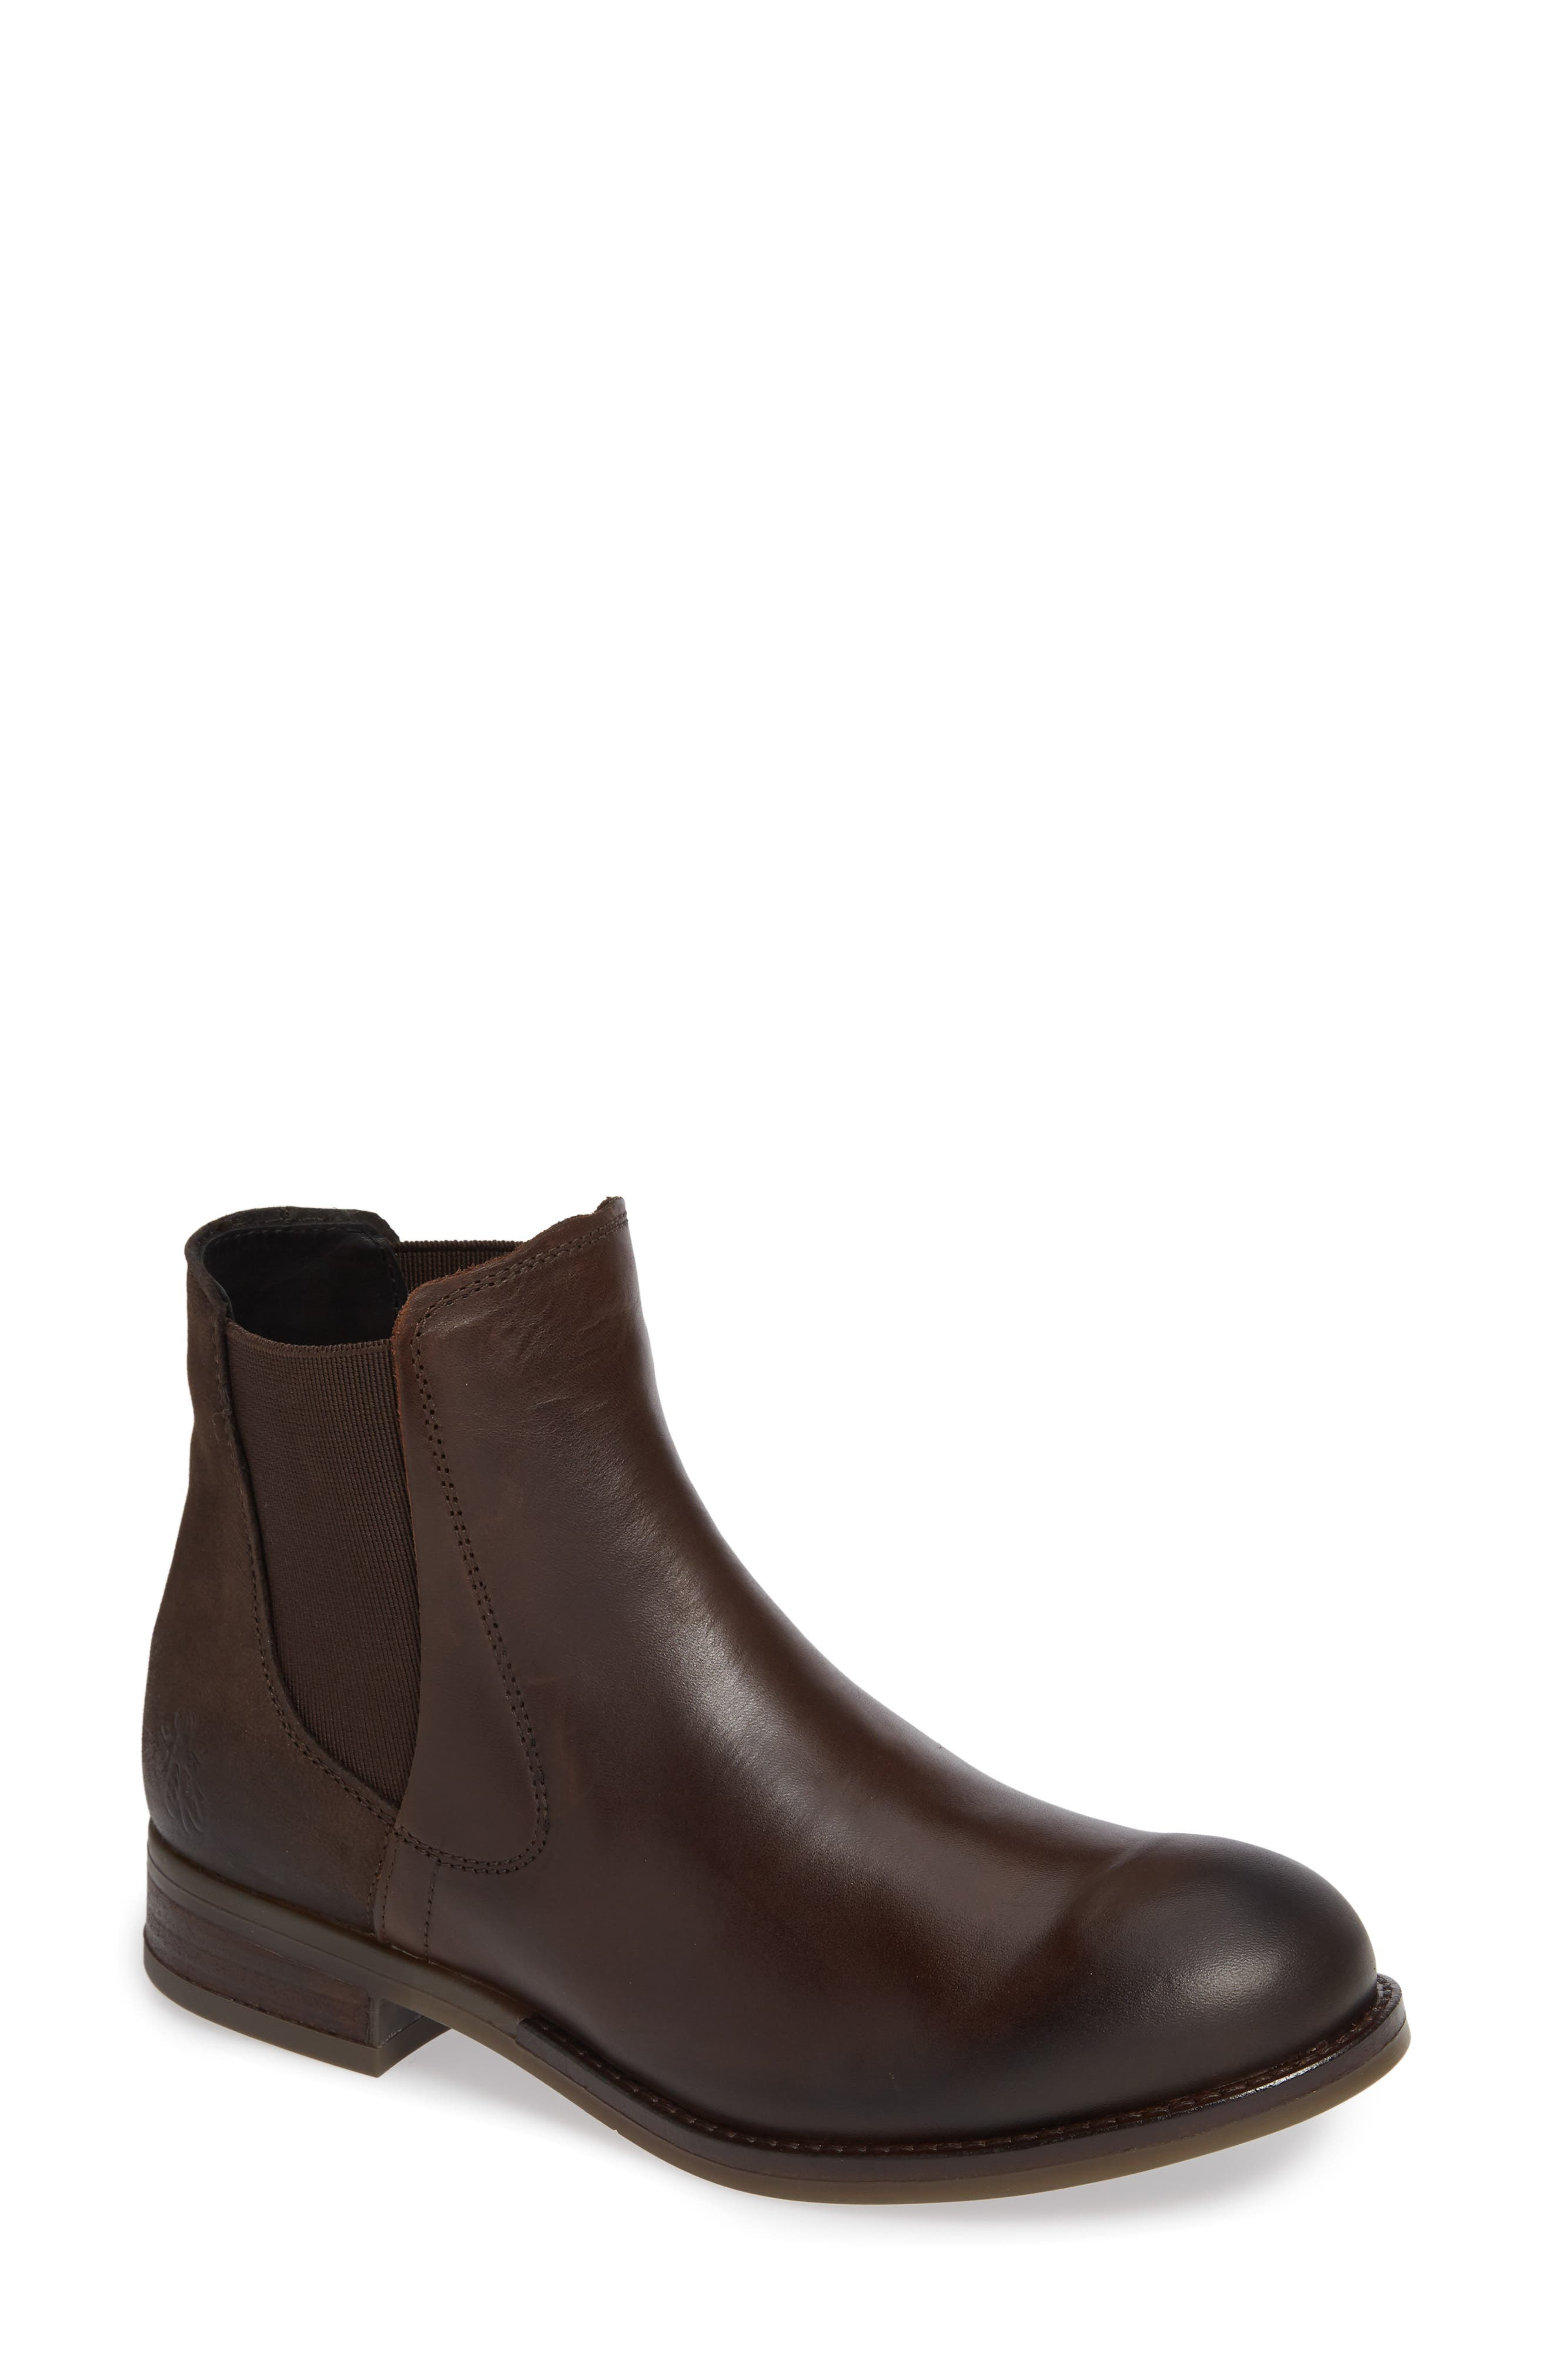 Alls Chelsea Bootie,                             Main thumbnail 1, color,                             DARK BROWN LEATHER